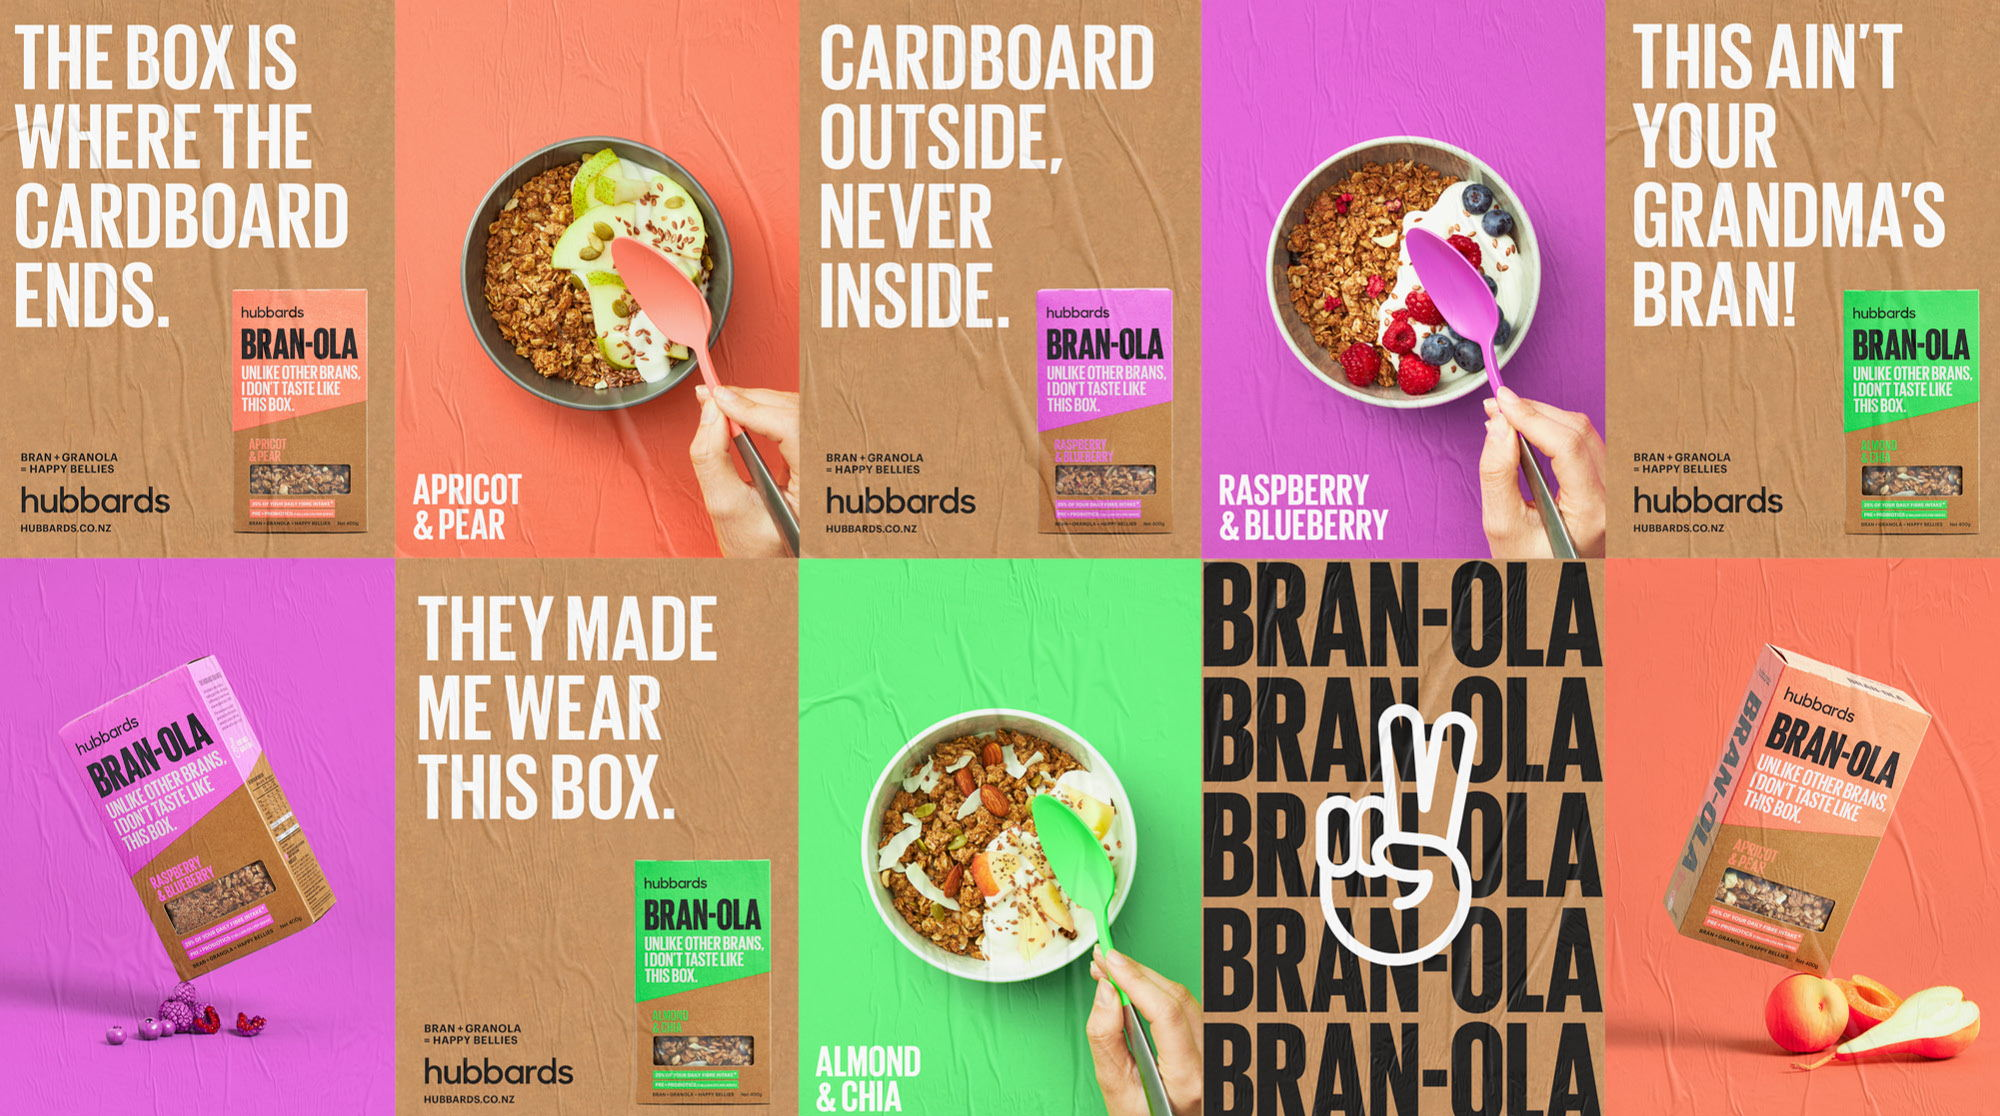 Onfire Design Uses Bolds Colors, Type And Sassy Copy To Make Bran-ola Stand Out